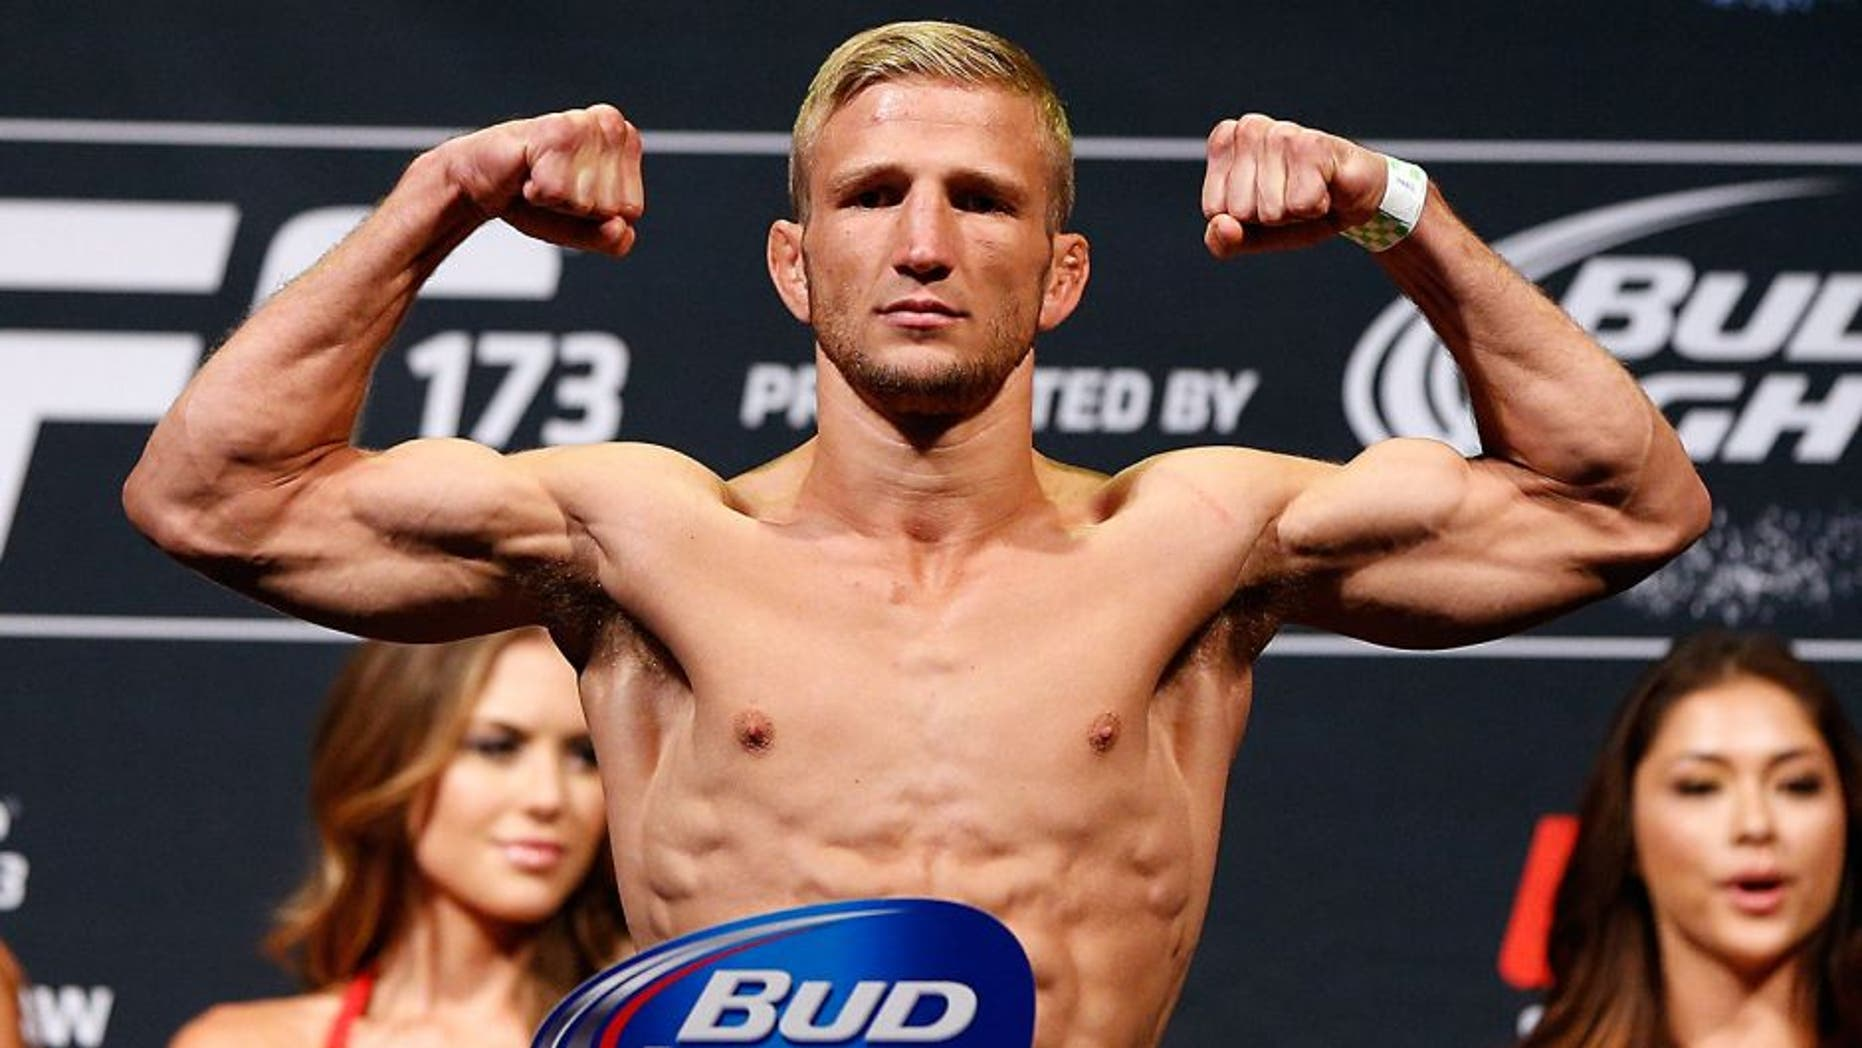 LAS VEGAS, NV - MAY 23: UFC bantamweight title challenger T.J. Dillashaw weighs in during the UFC 173 weigh-in at the MGM Grand Garden Arenaon May 23, 2014 in Las Vegas, Nevada. (Photo by Josh Hedges/Zuffa LLC/Zuffa LLC via Getty Images)